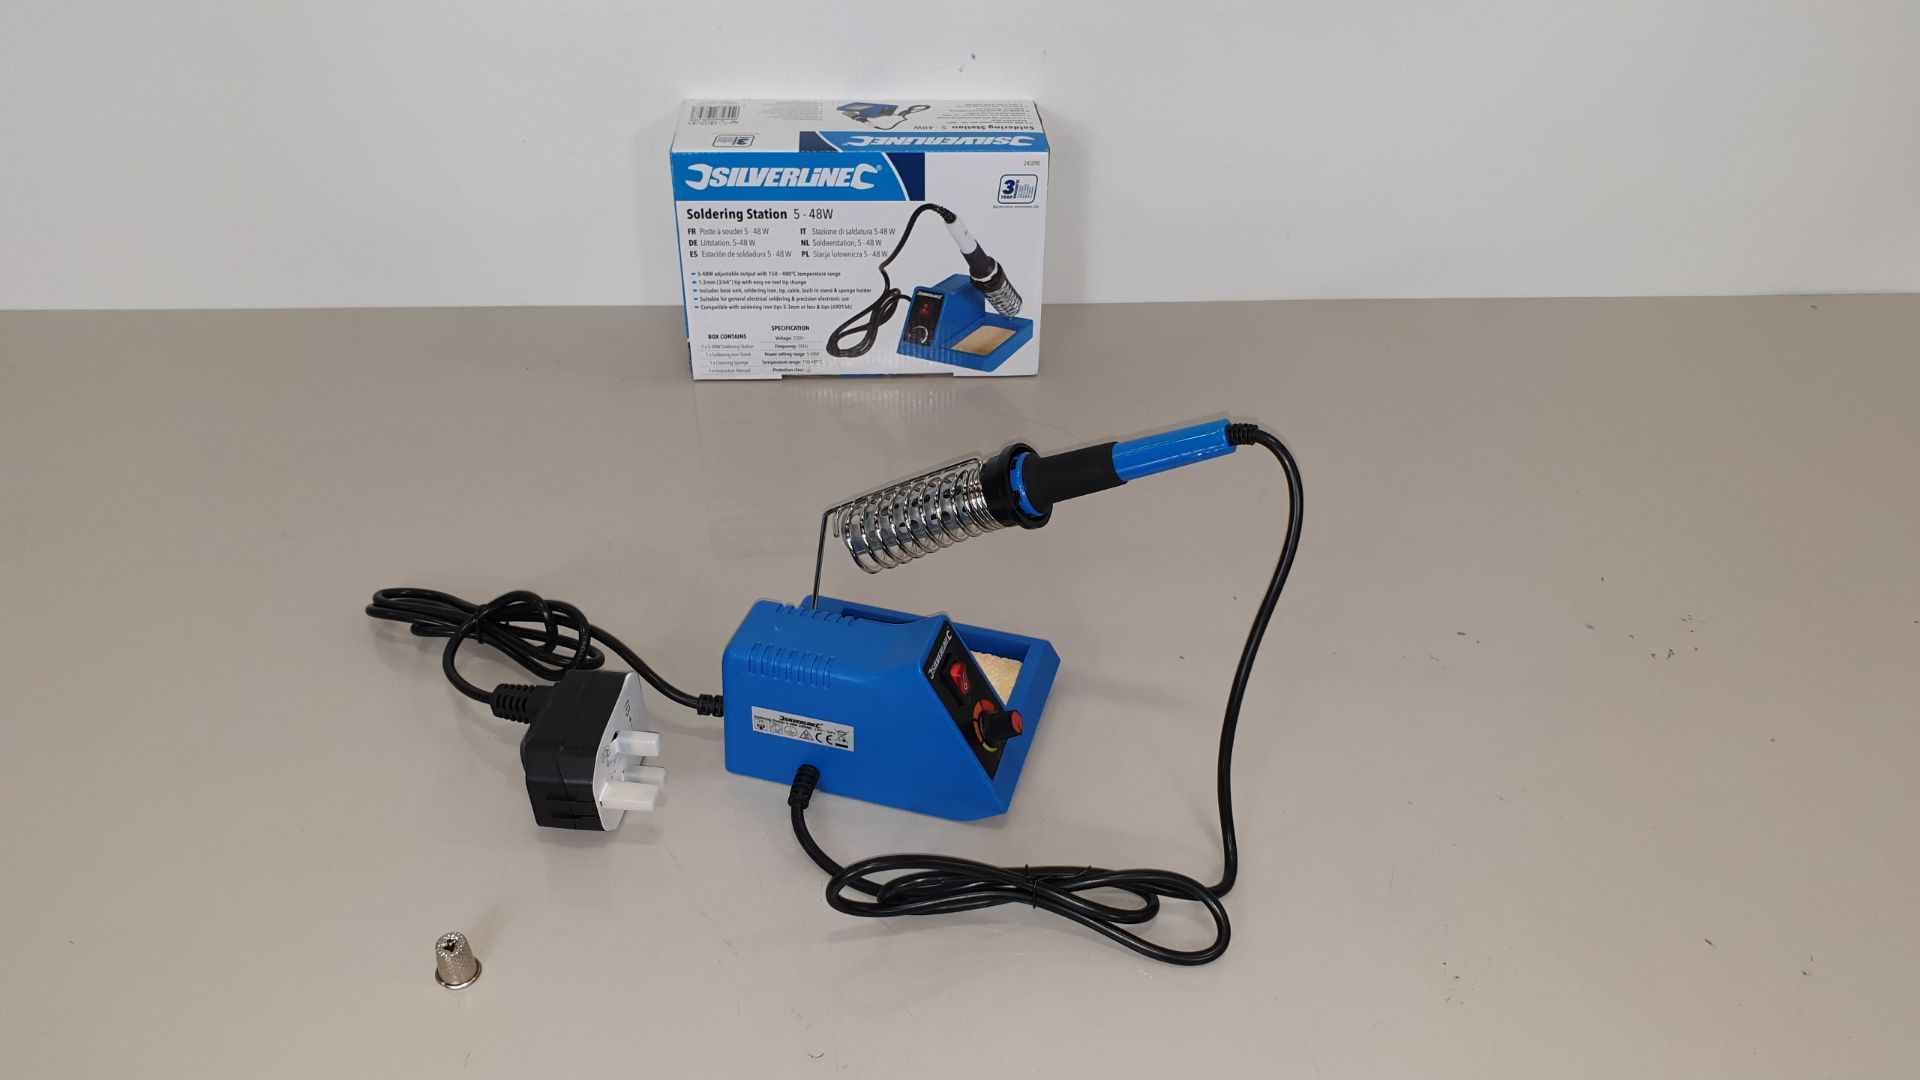 Lot 228 - 20 X BRAND NEW SILVERLINE SOLDERING STATIONS 5-48W (PROD CODE 245090) - TRADE PRICE £31.34 EACH (EXC